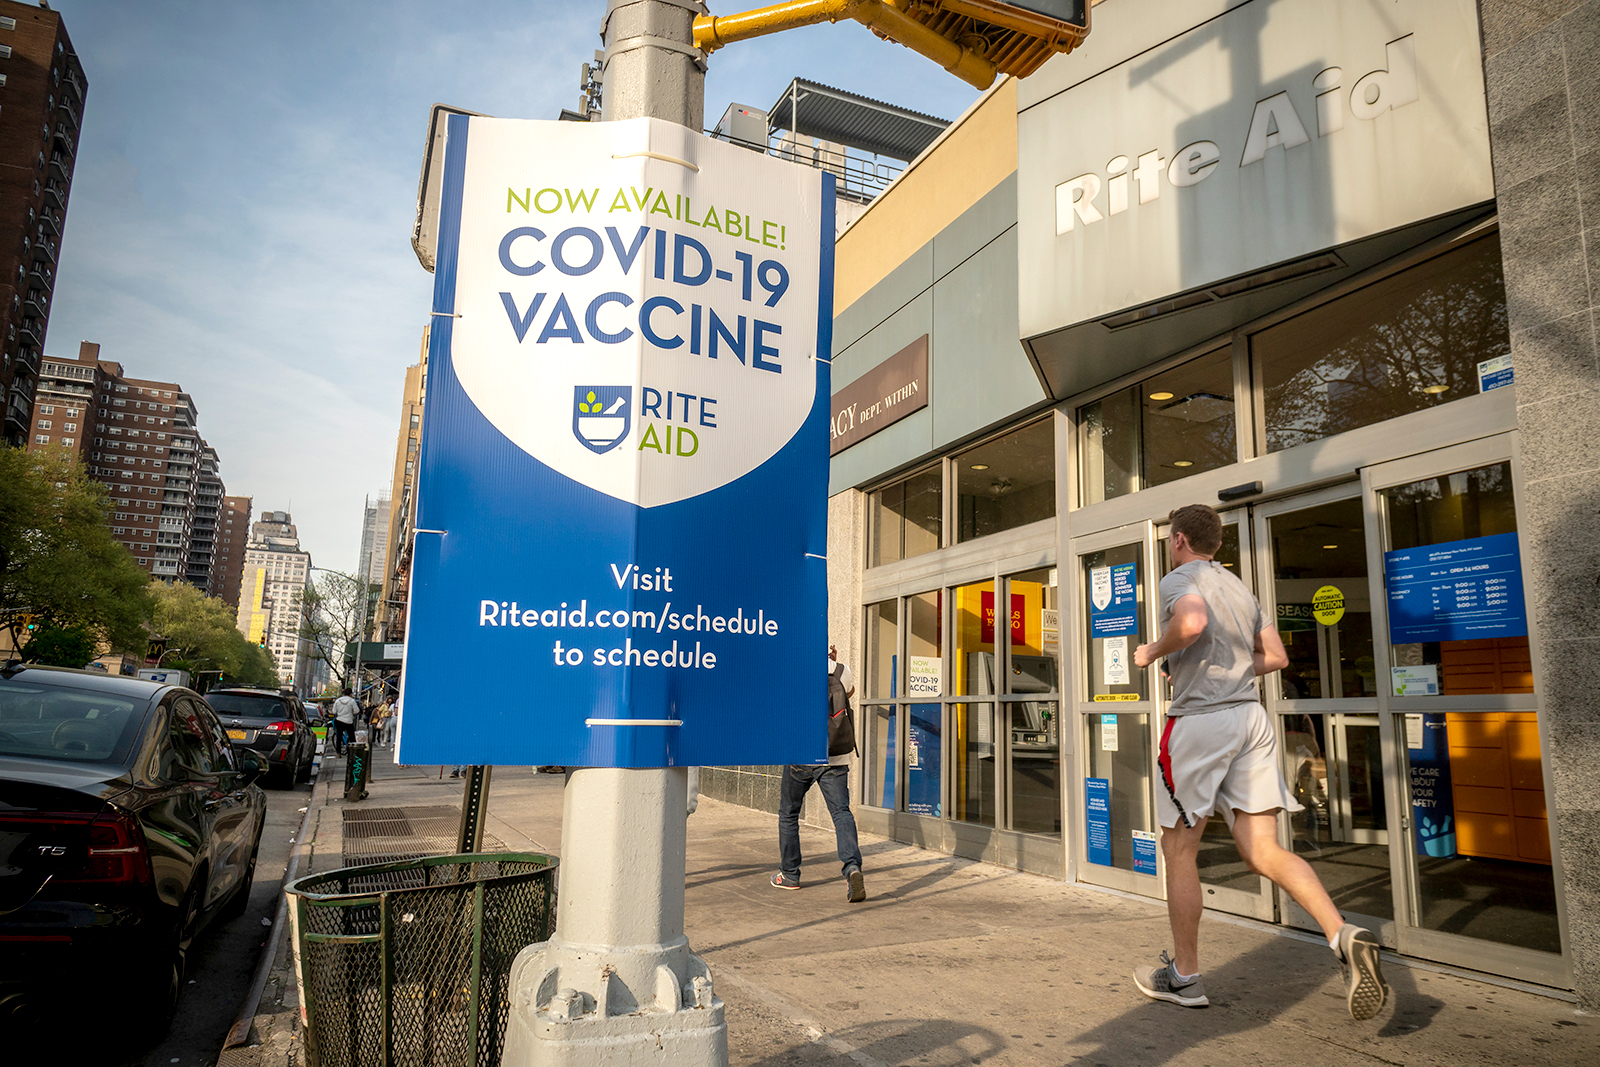 3 states have already reached Biden's new vaccination goal, but vaccine hesitancy may make it challenging for others